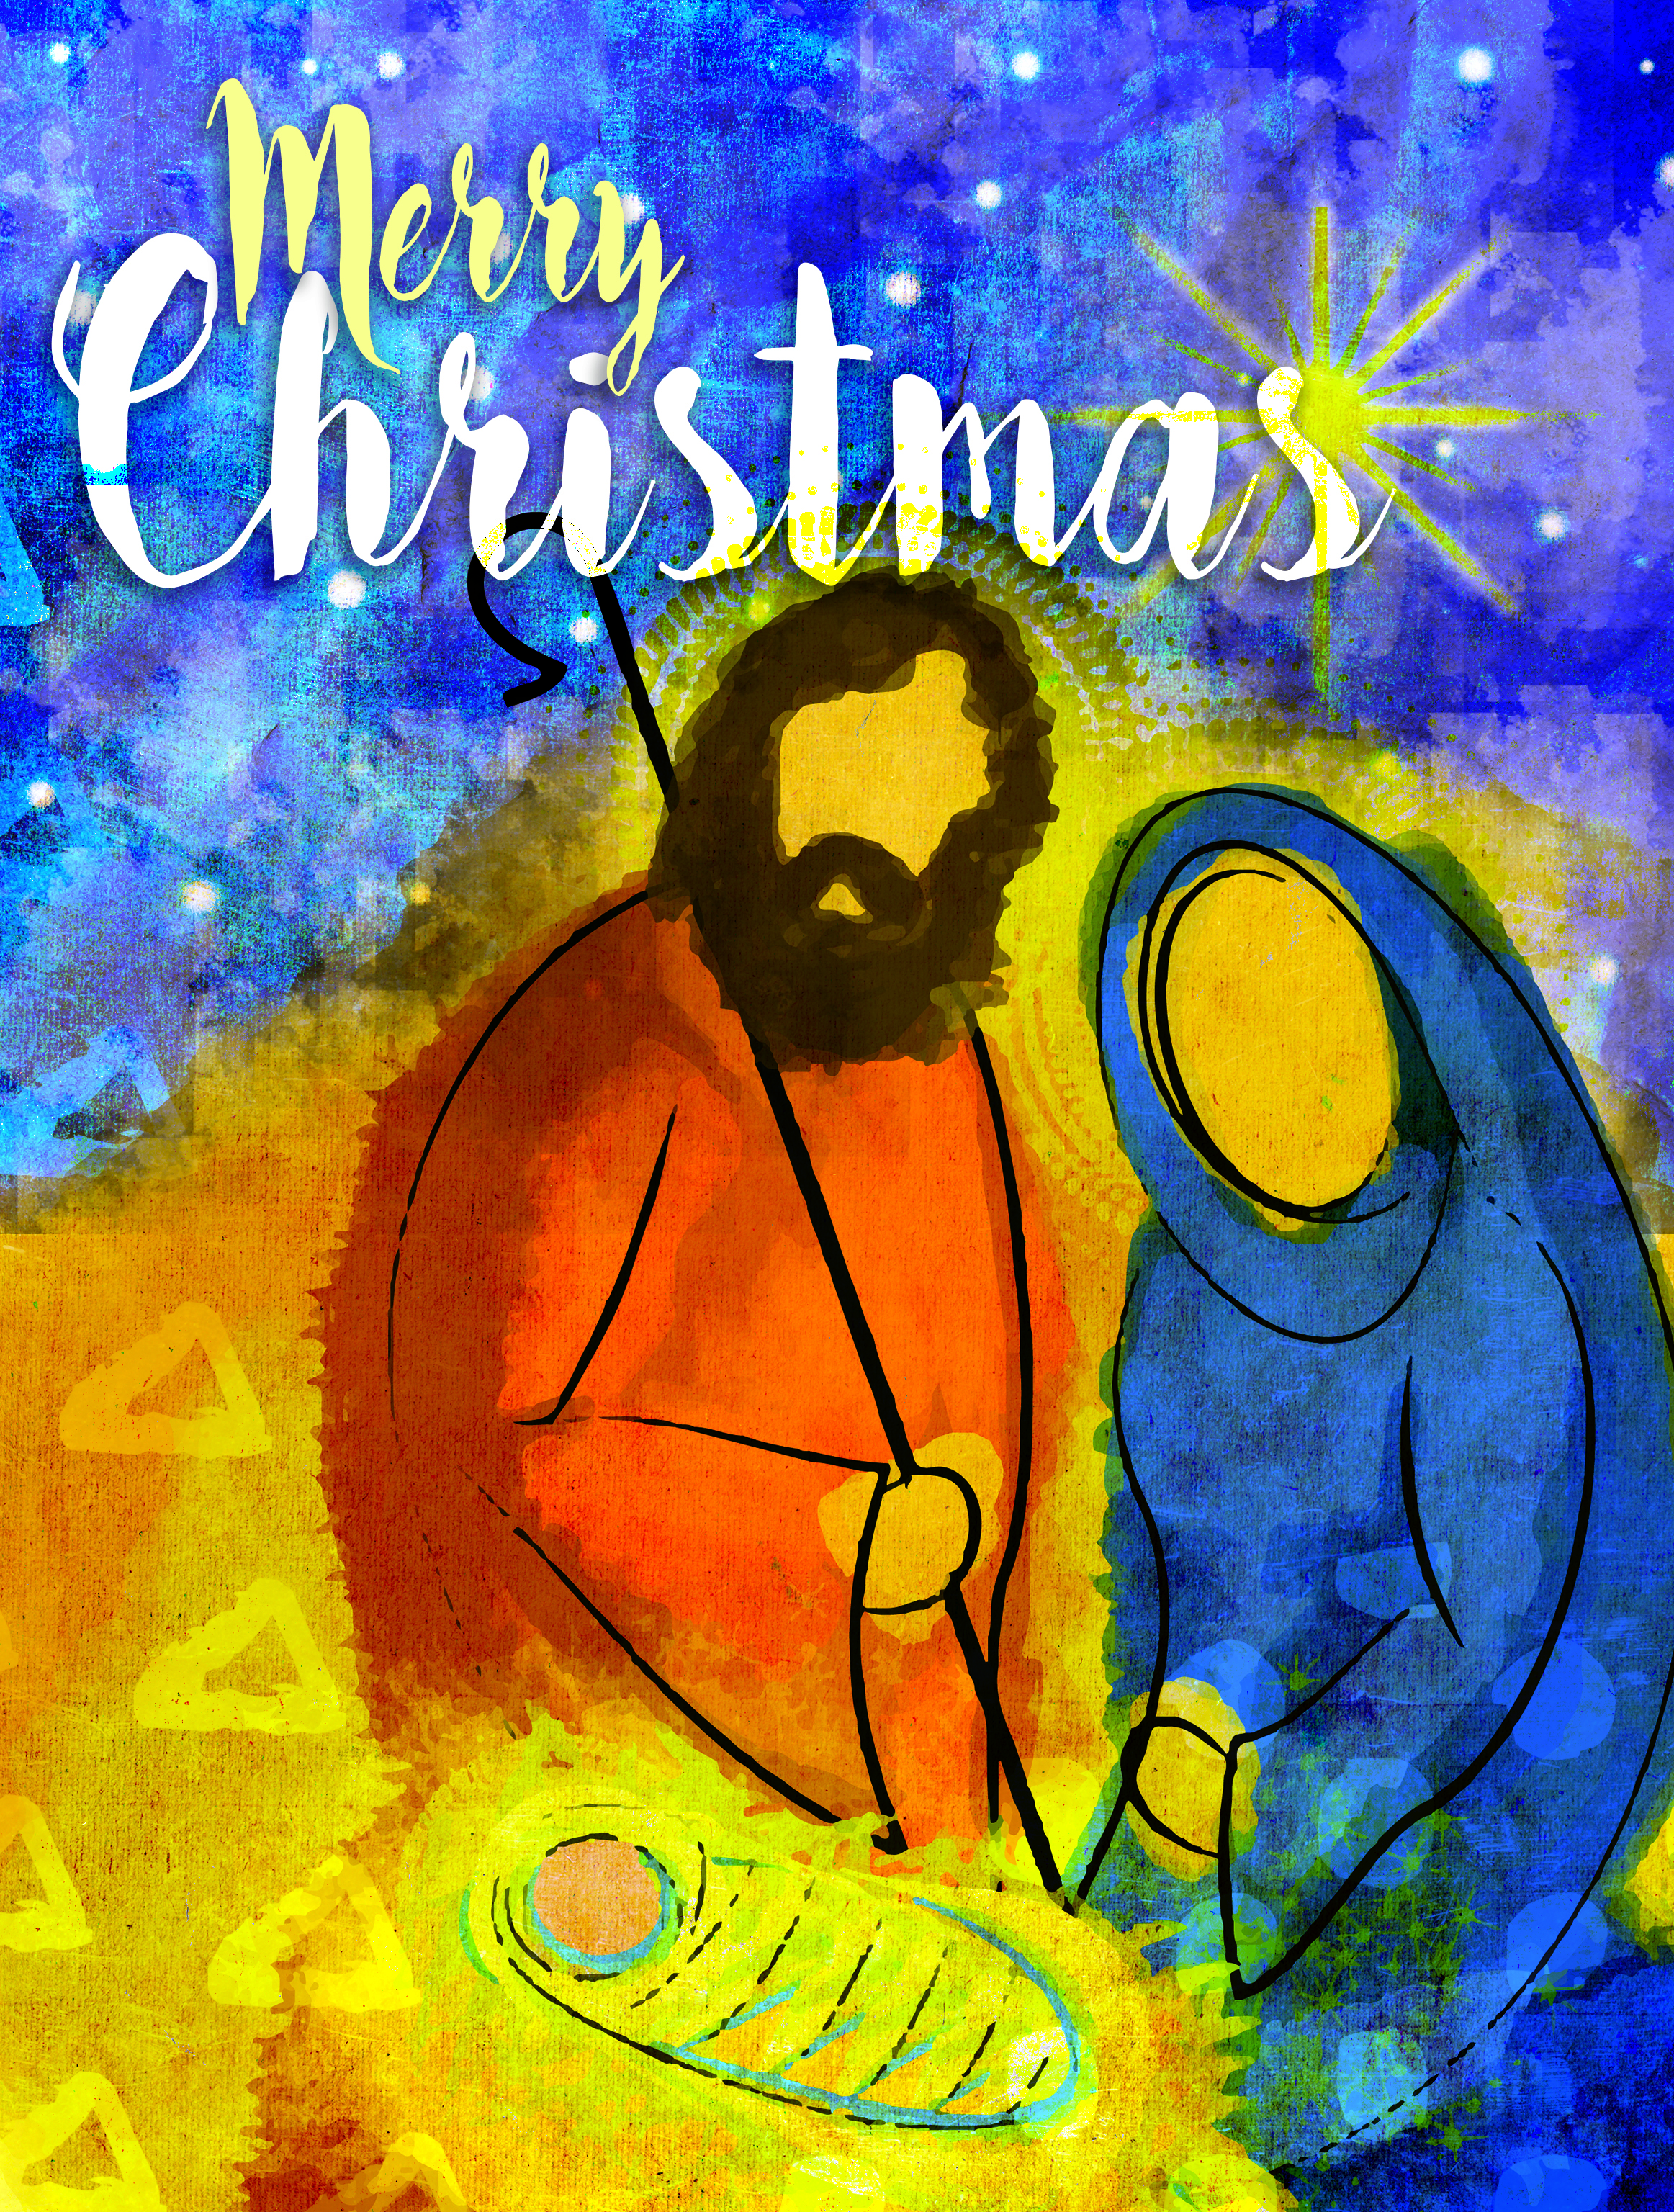 What are you doing this weekend? Joining us for mass we hope. Be sure to come celebrate the birth of Jesus Christ with us. Mass times are: Saturday at 4:30 p.m., Christmas carols at 11:30 p.m., Midnight (12:00 a.m.), and 10:00 a.m. on Sunday We look forward to seeing you!